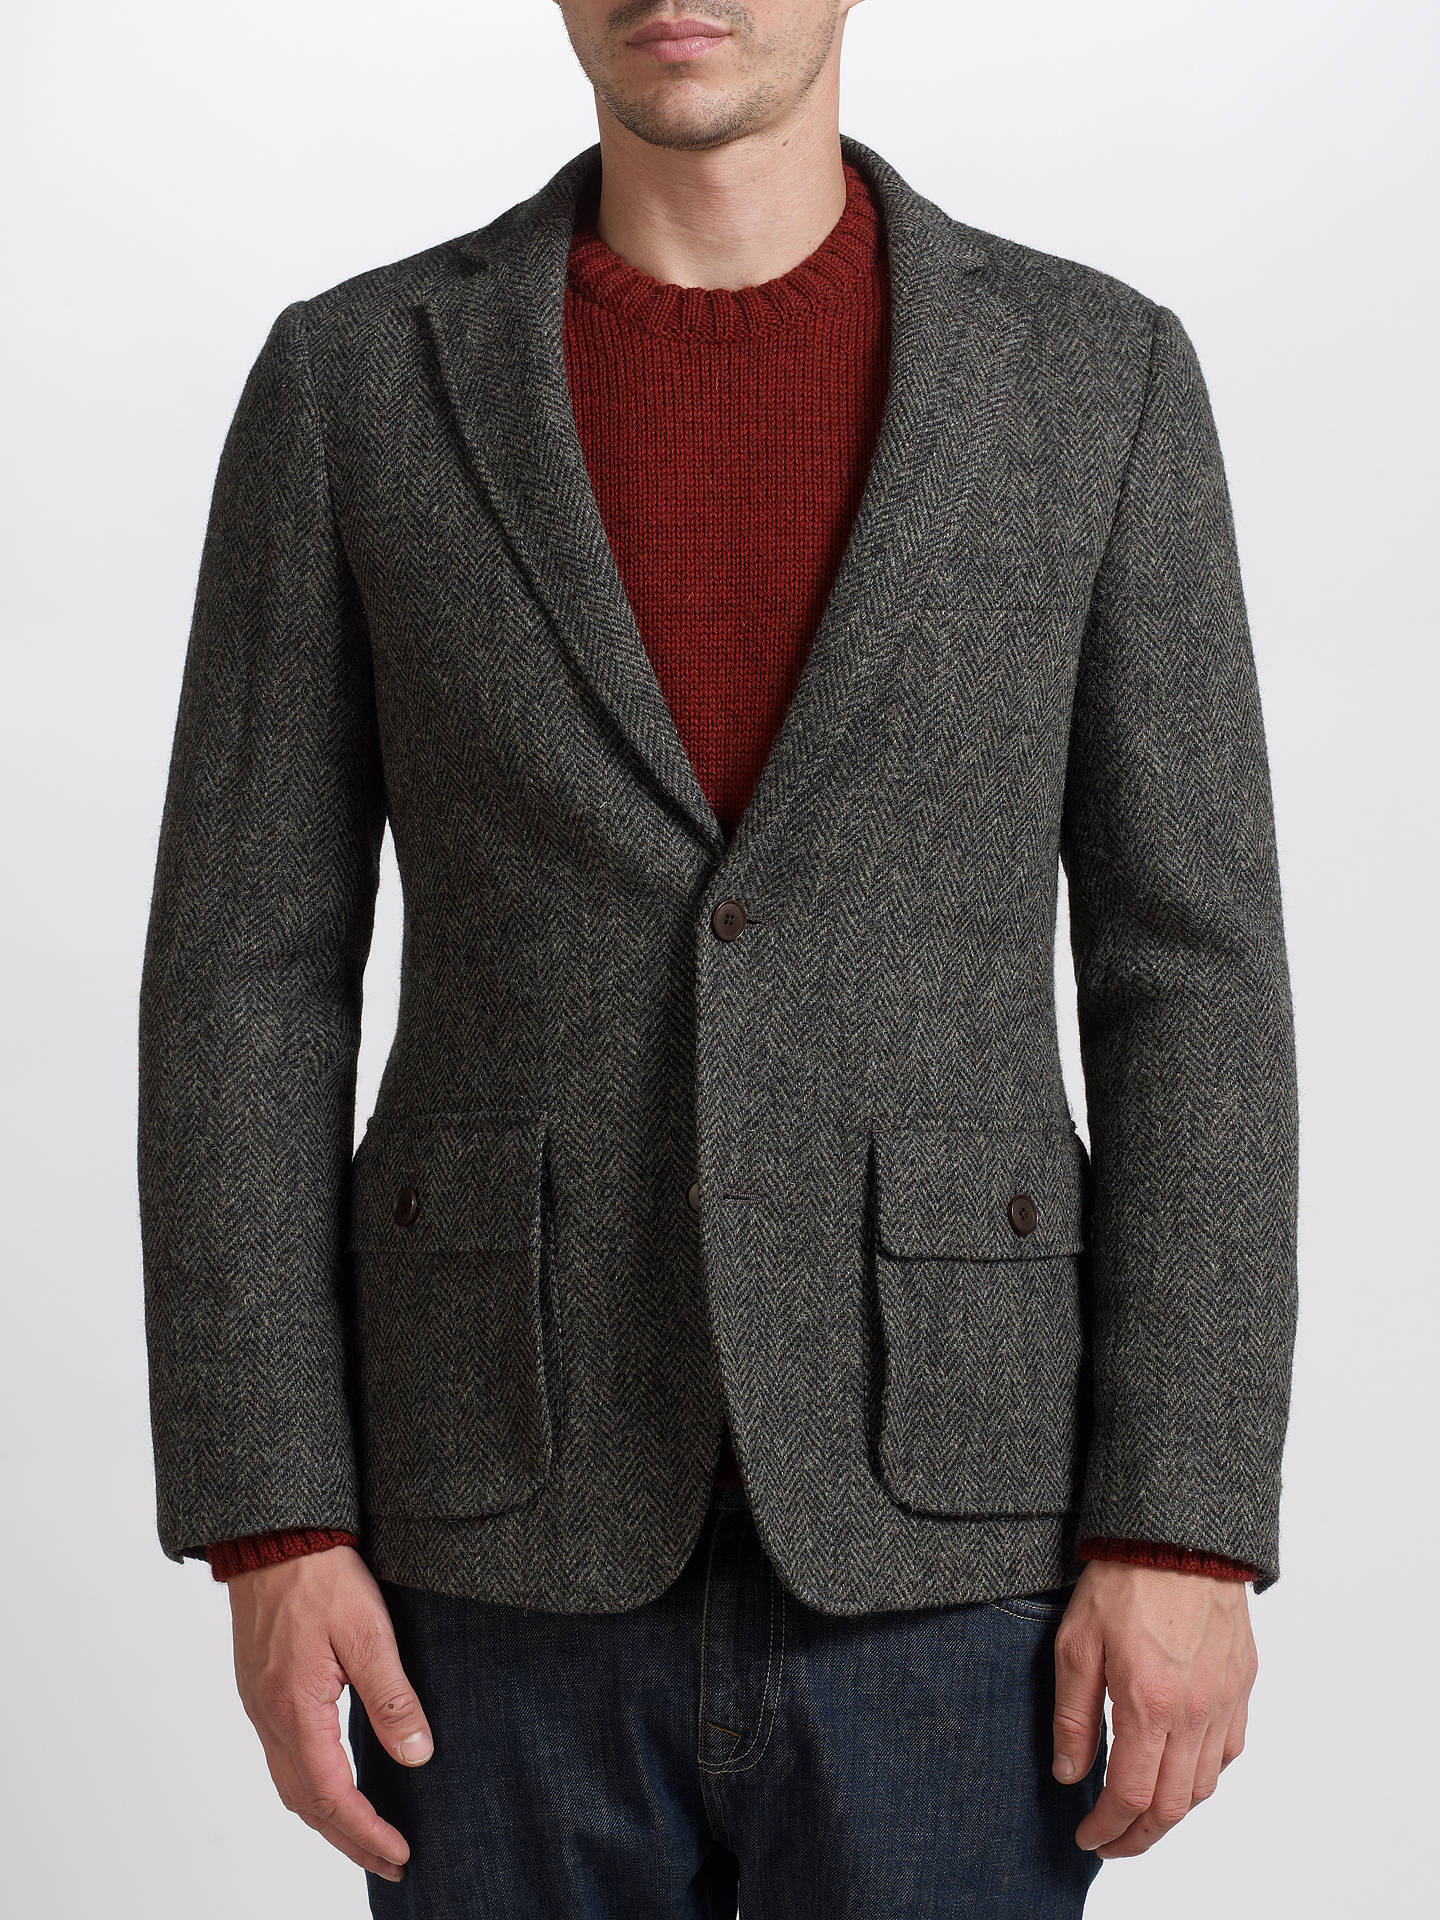 JOHN LEWIS & Co. Harris Tweed Vintage Herringbone Blazer